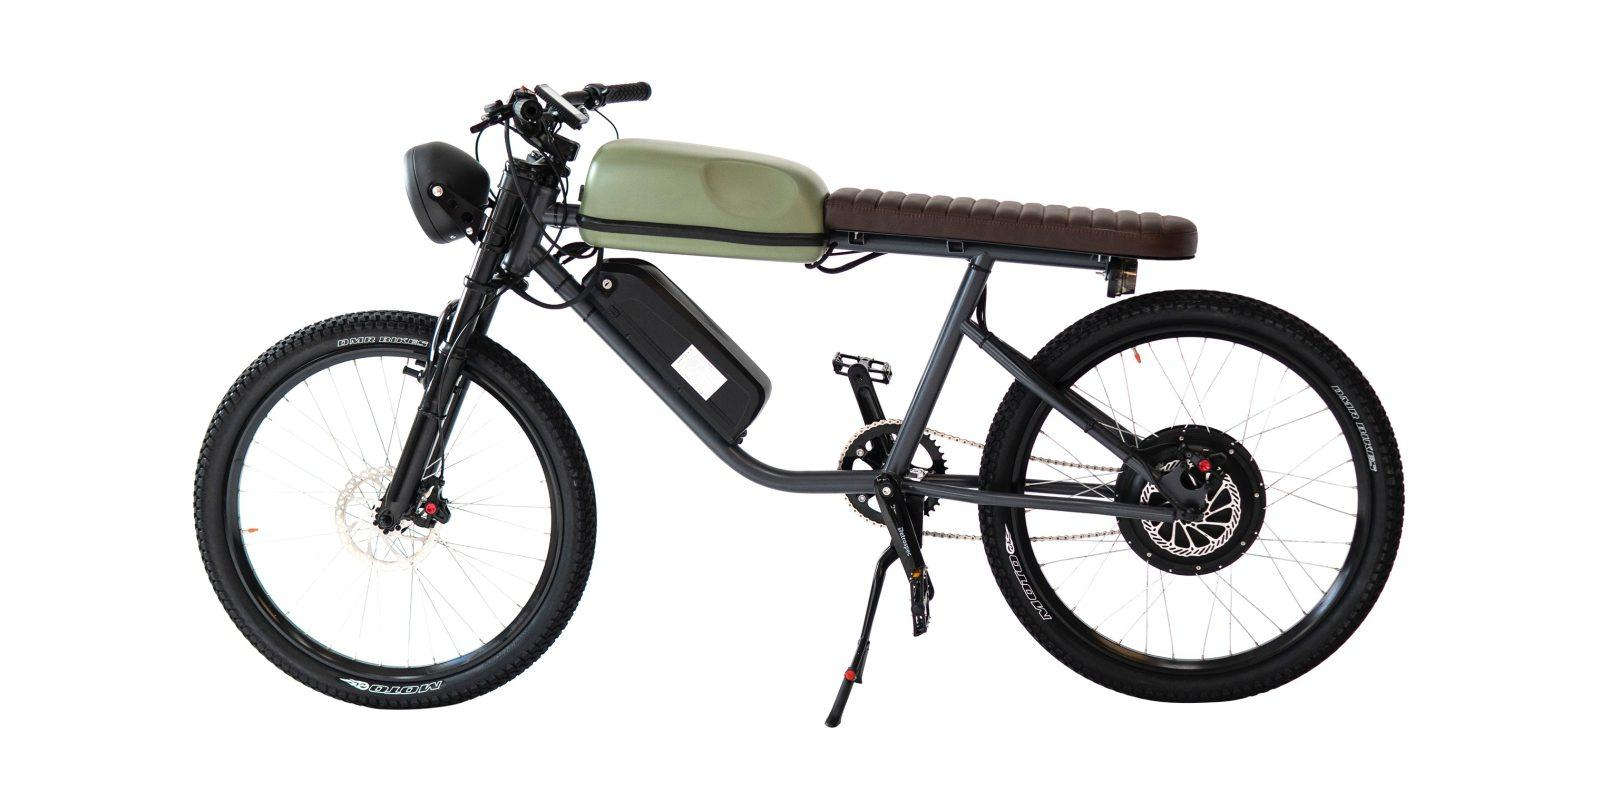 This high speed 1,000W e-bike has the look and feel of a vintage motorcycle  - Electrek